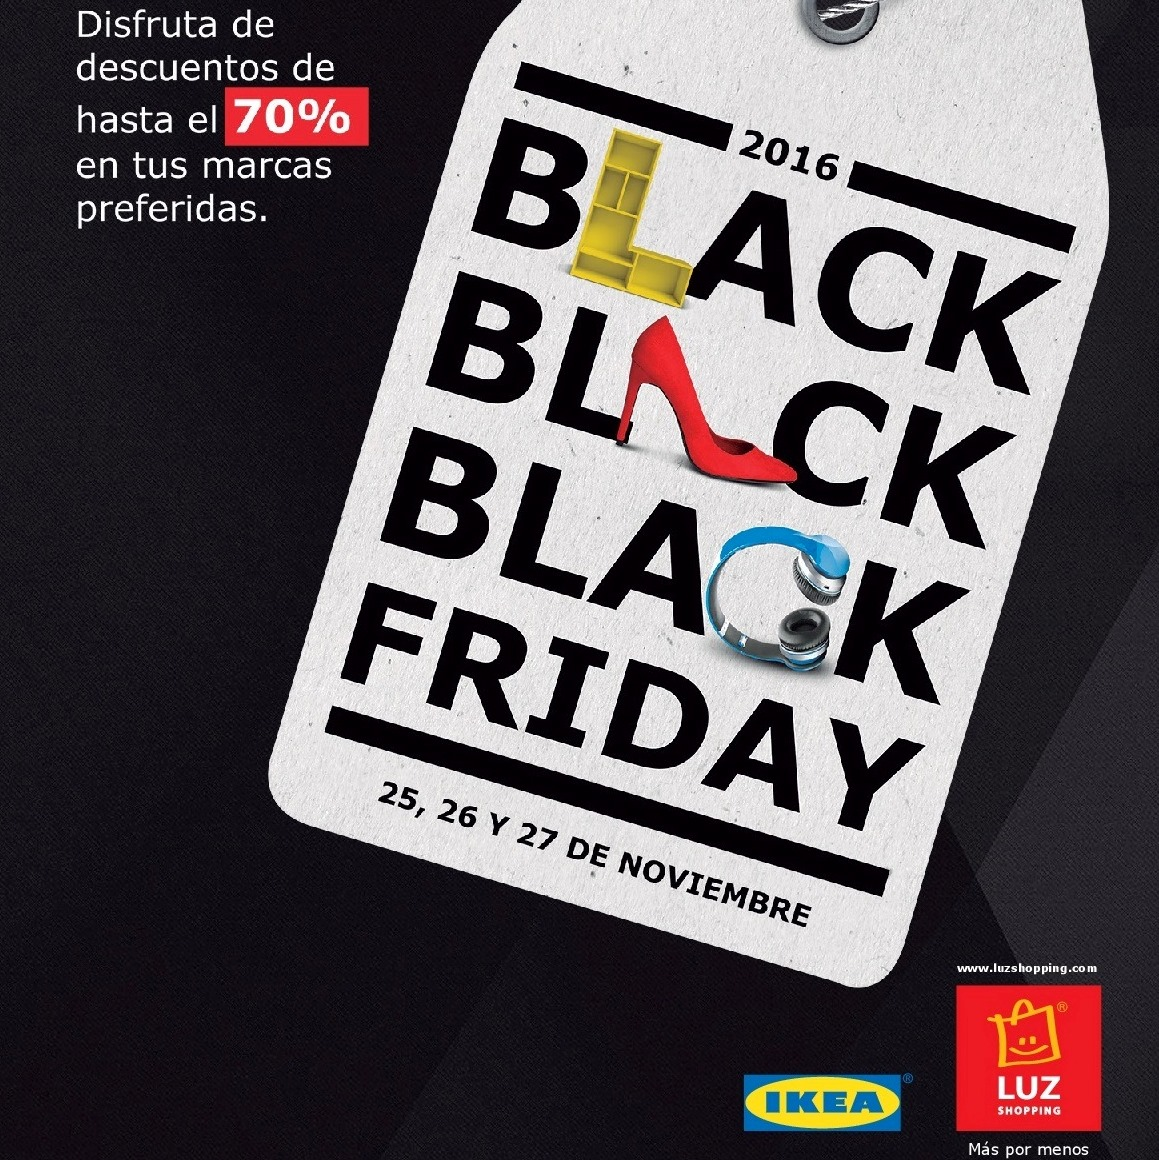 Tiendas Black Friday. LUZ shopping